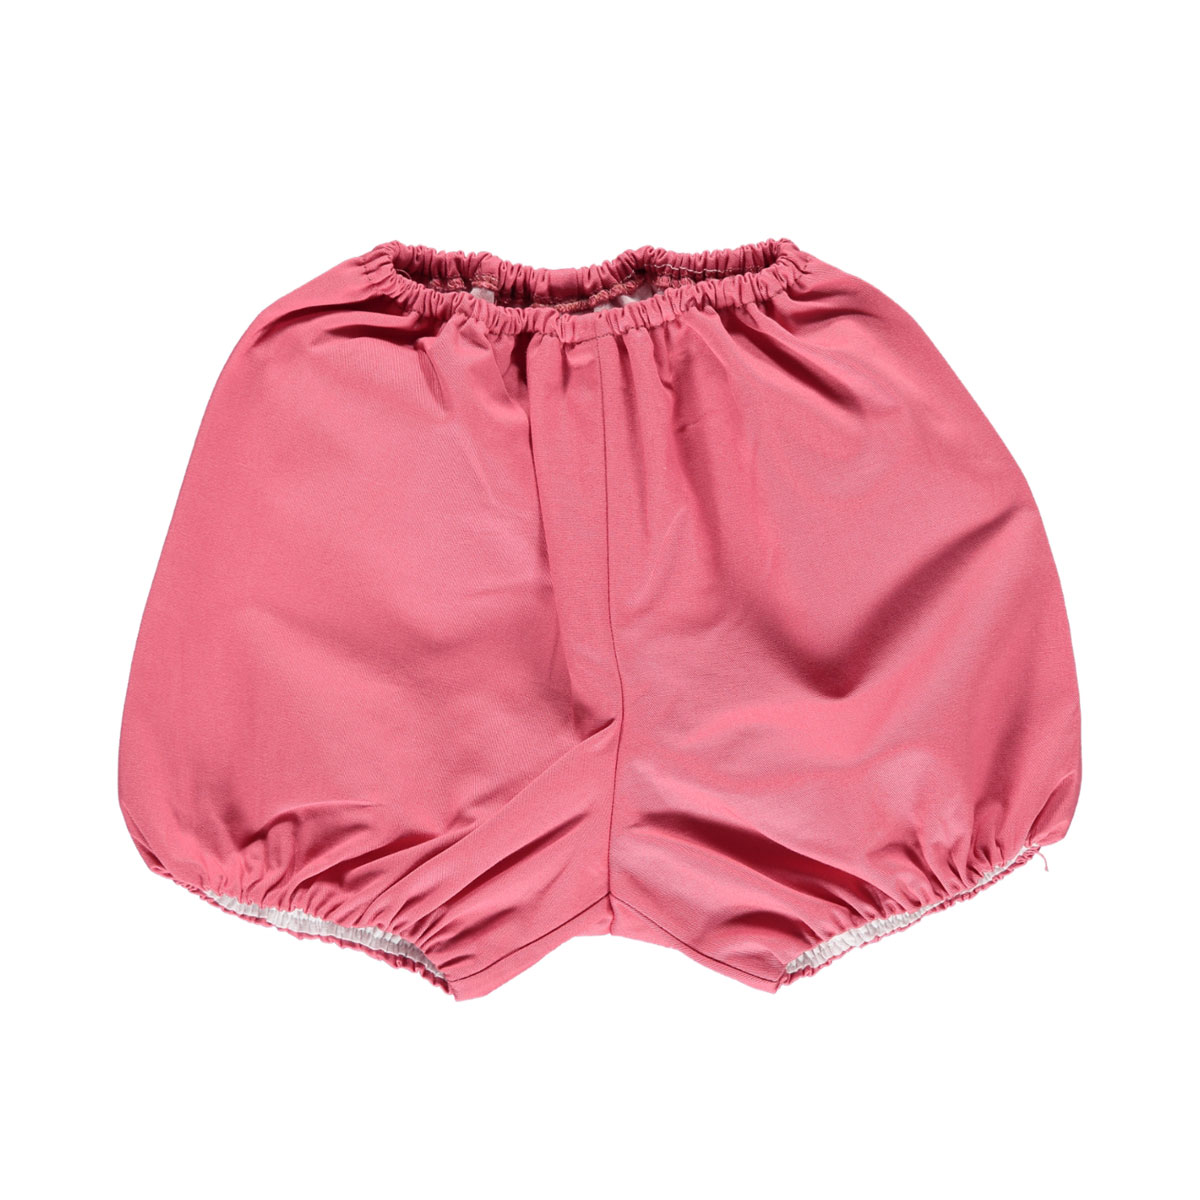 Amaia Cotton Magpie Bloomer in Pink